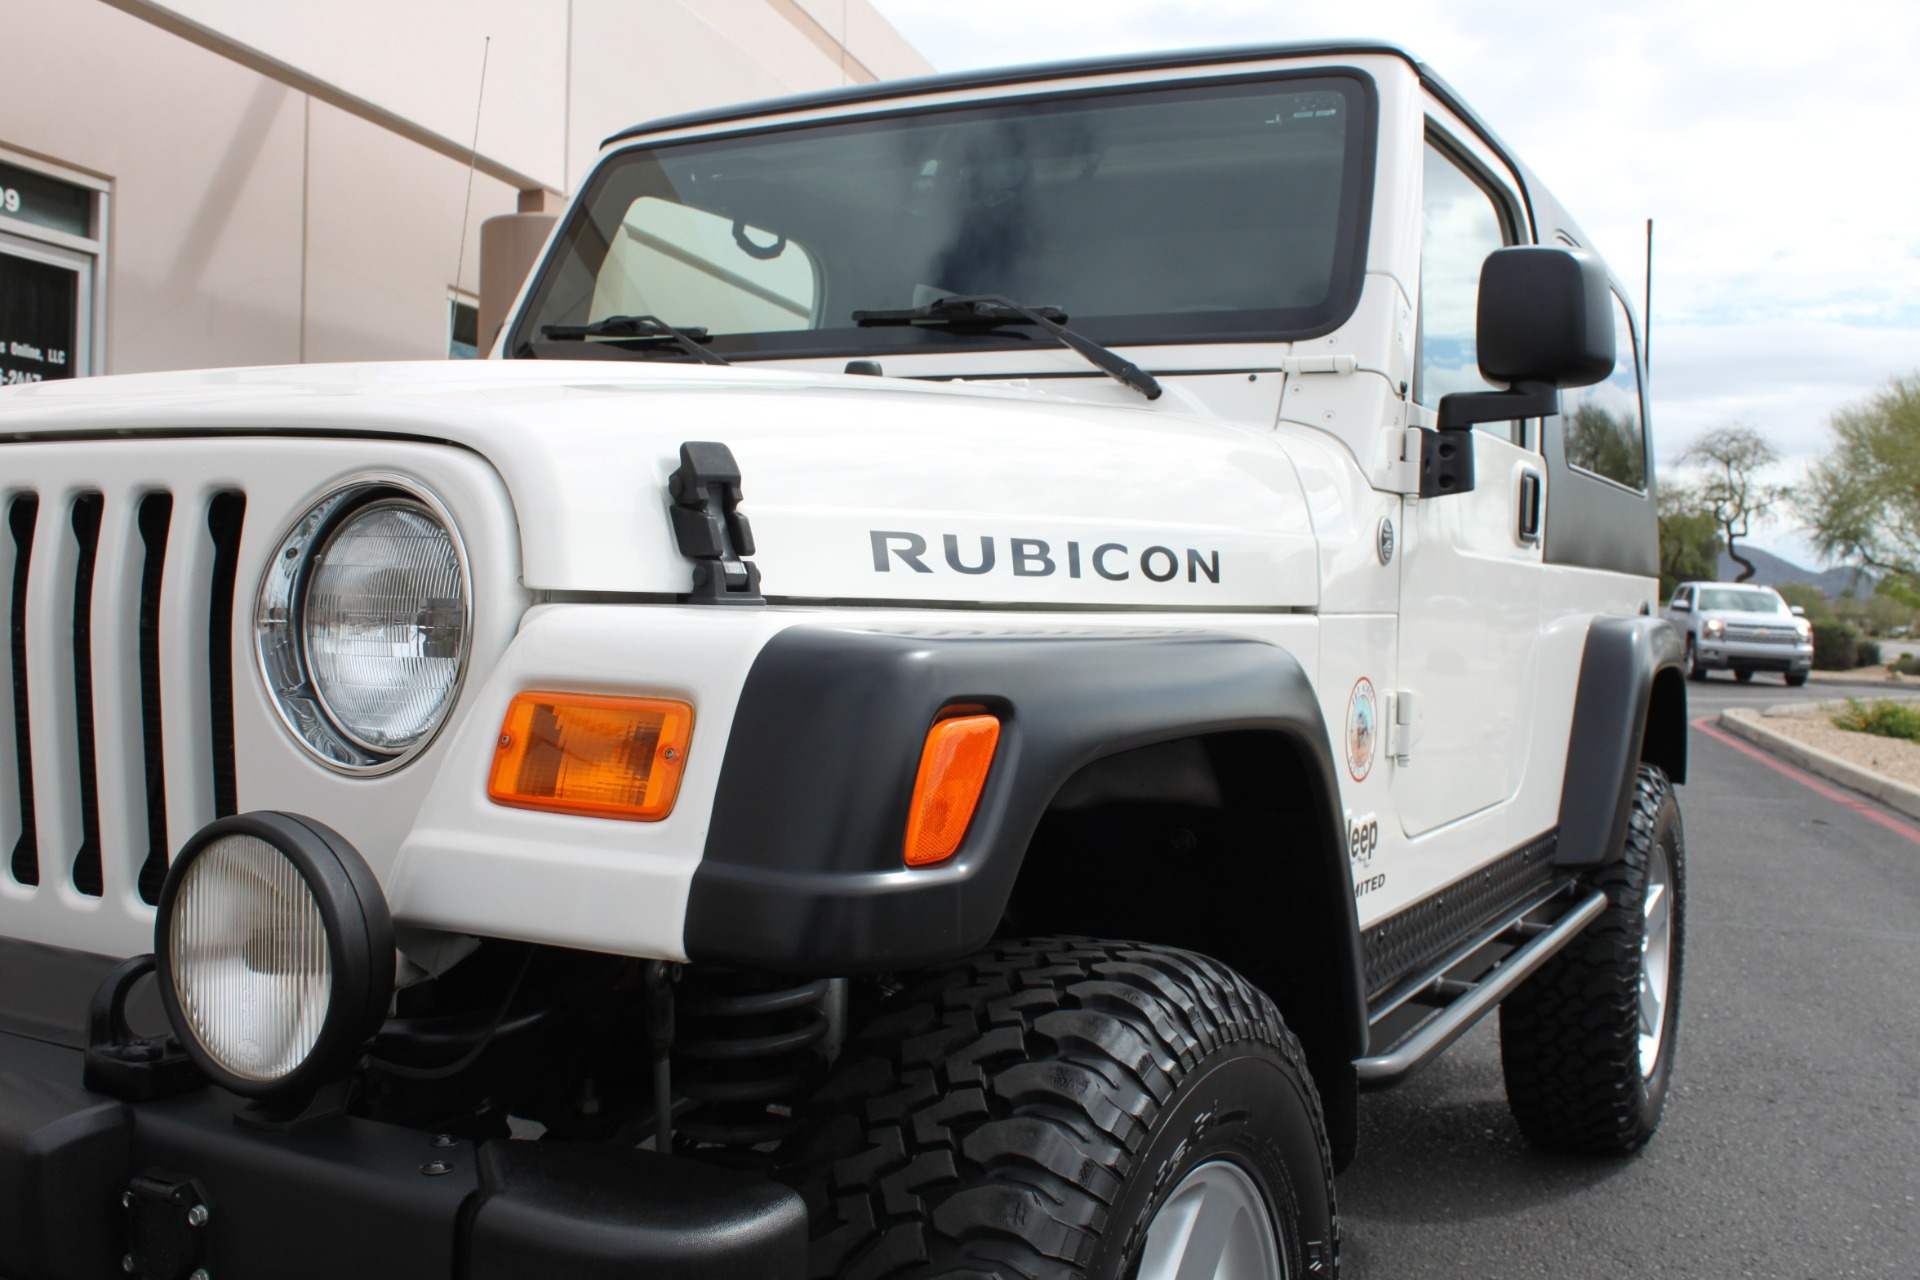 Used-2006-Jeep-Wrangler-Unlimited-Rubicon-LWB-Camaro